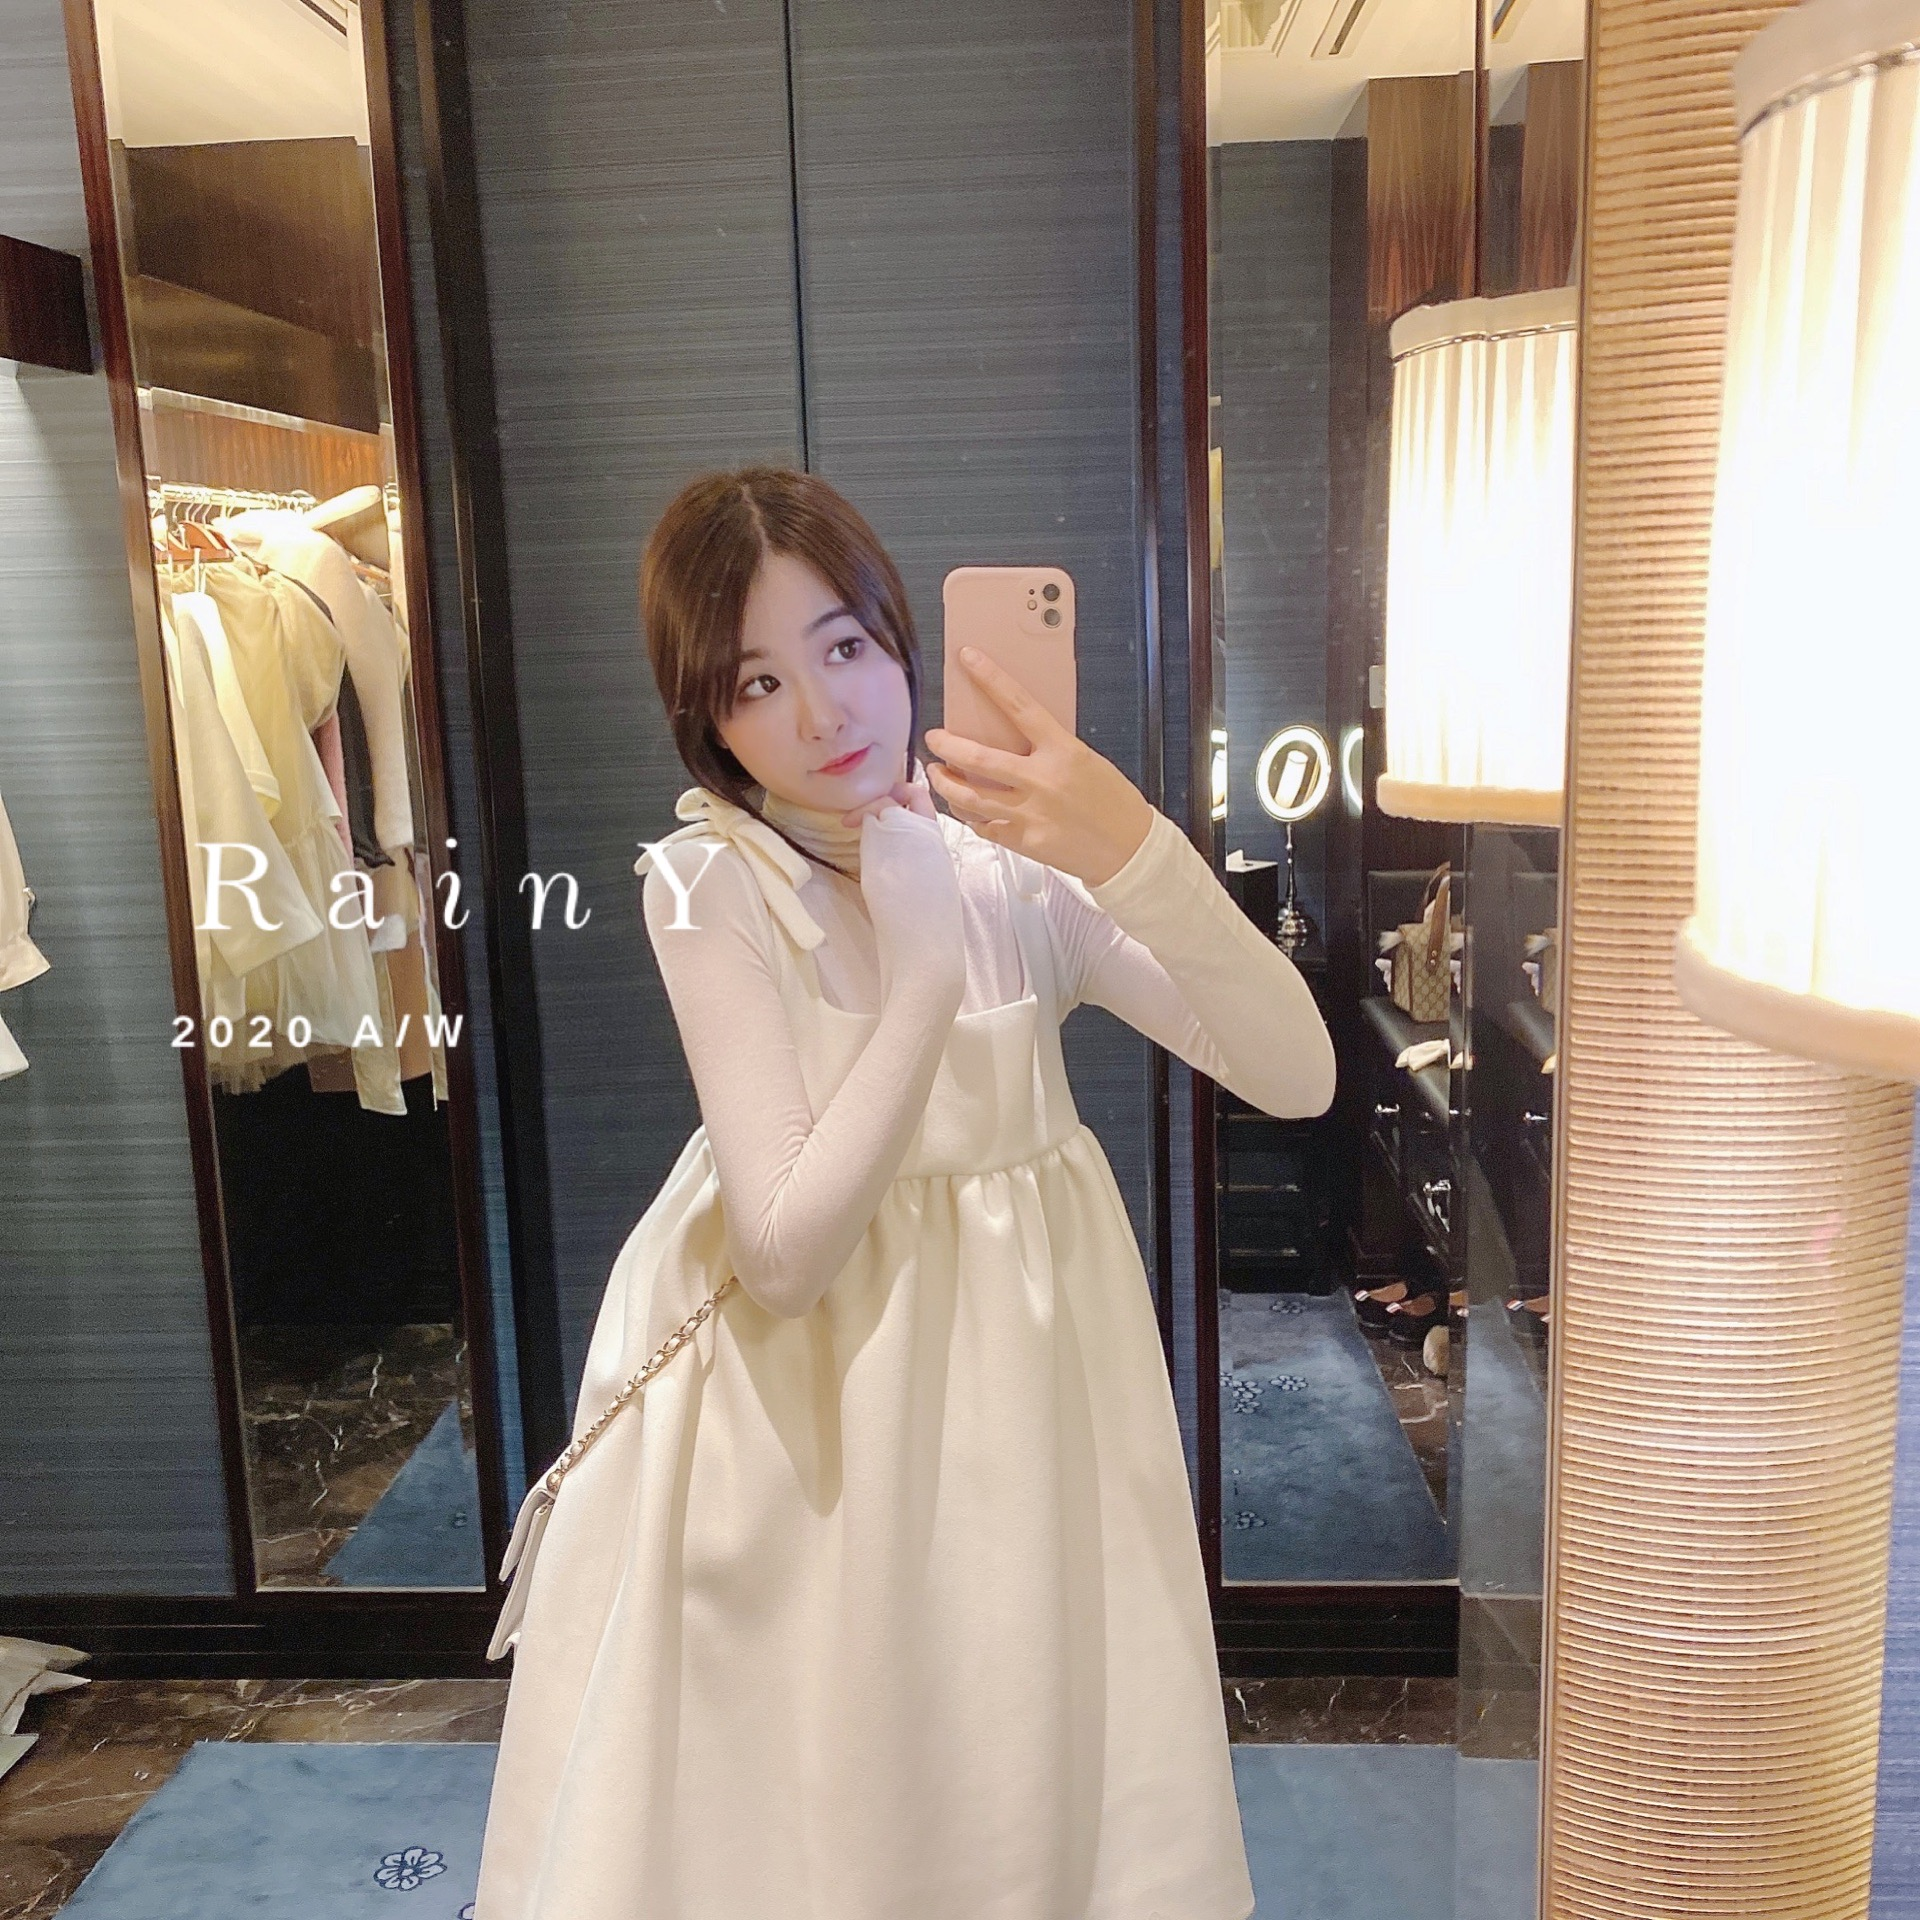 RainY. 2020 autumn and winter new French temperament skirt bottoming with white woolen dress women